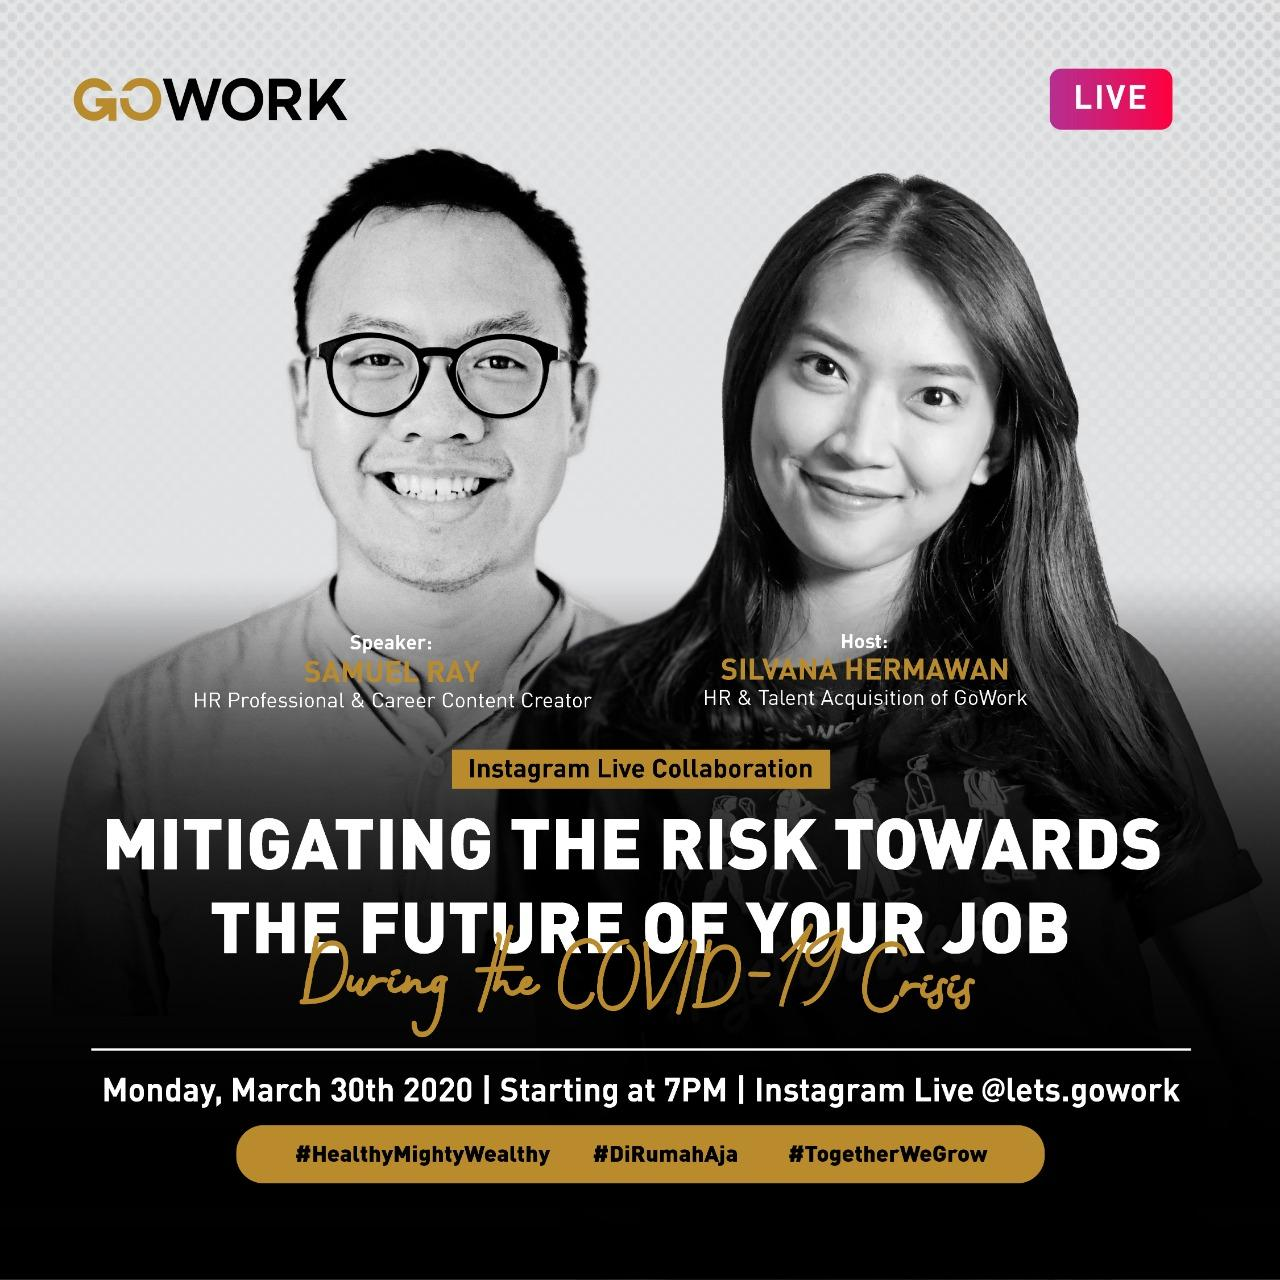 Mitigating The Risk Towards The Future of Your Job During the COVID-19 Crisis